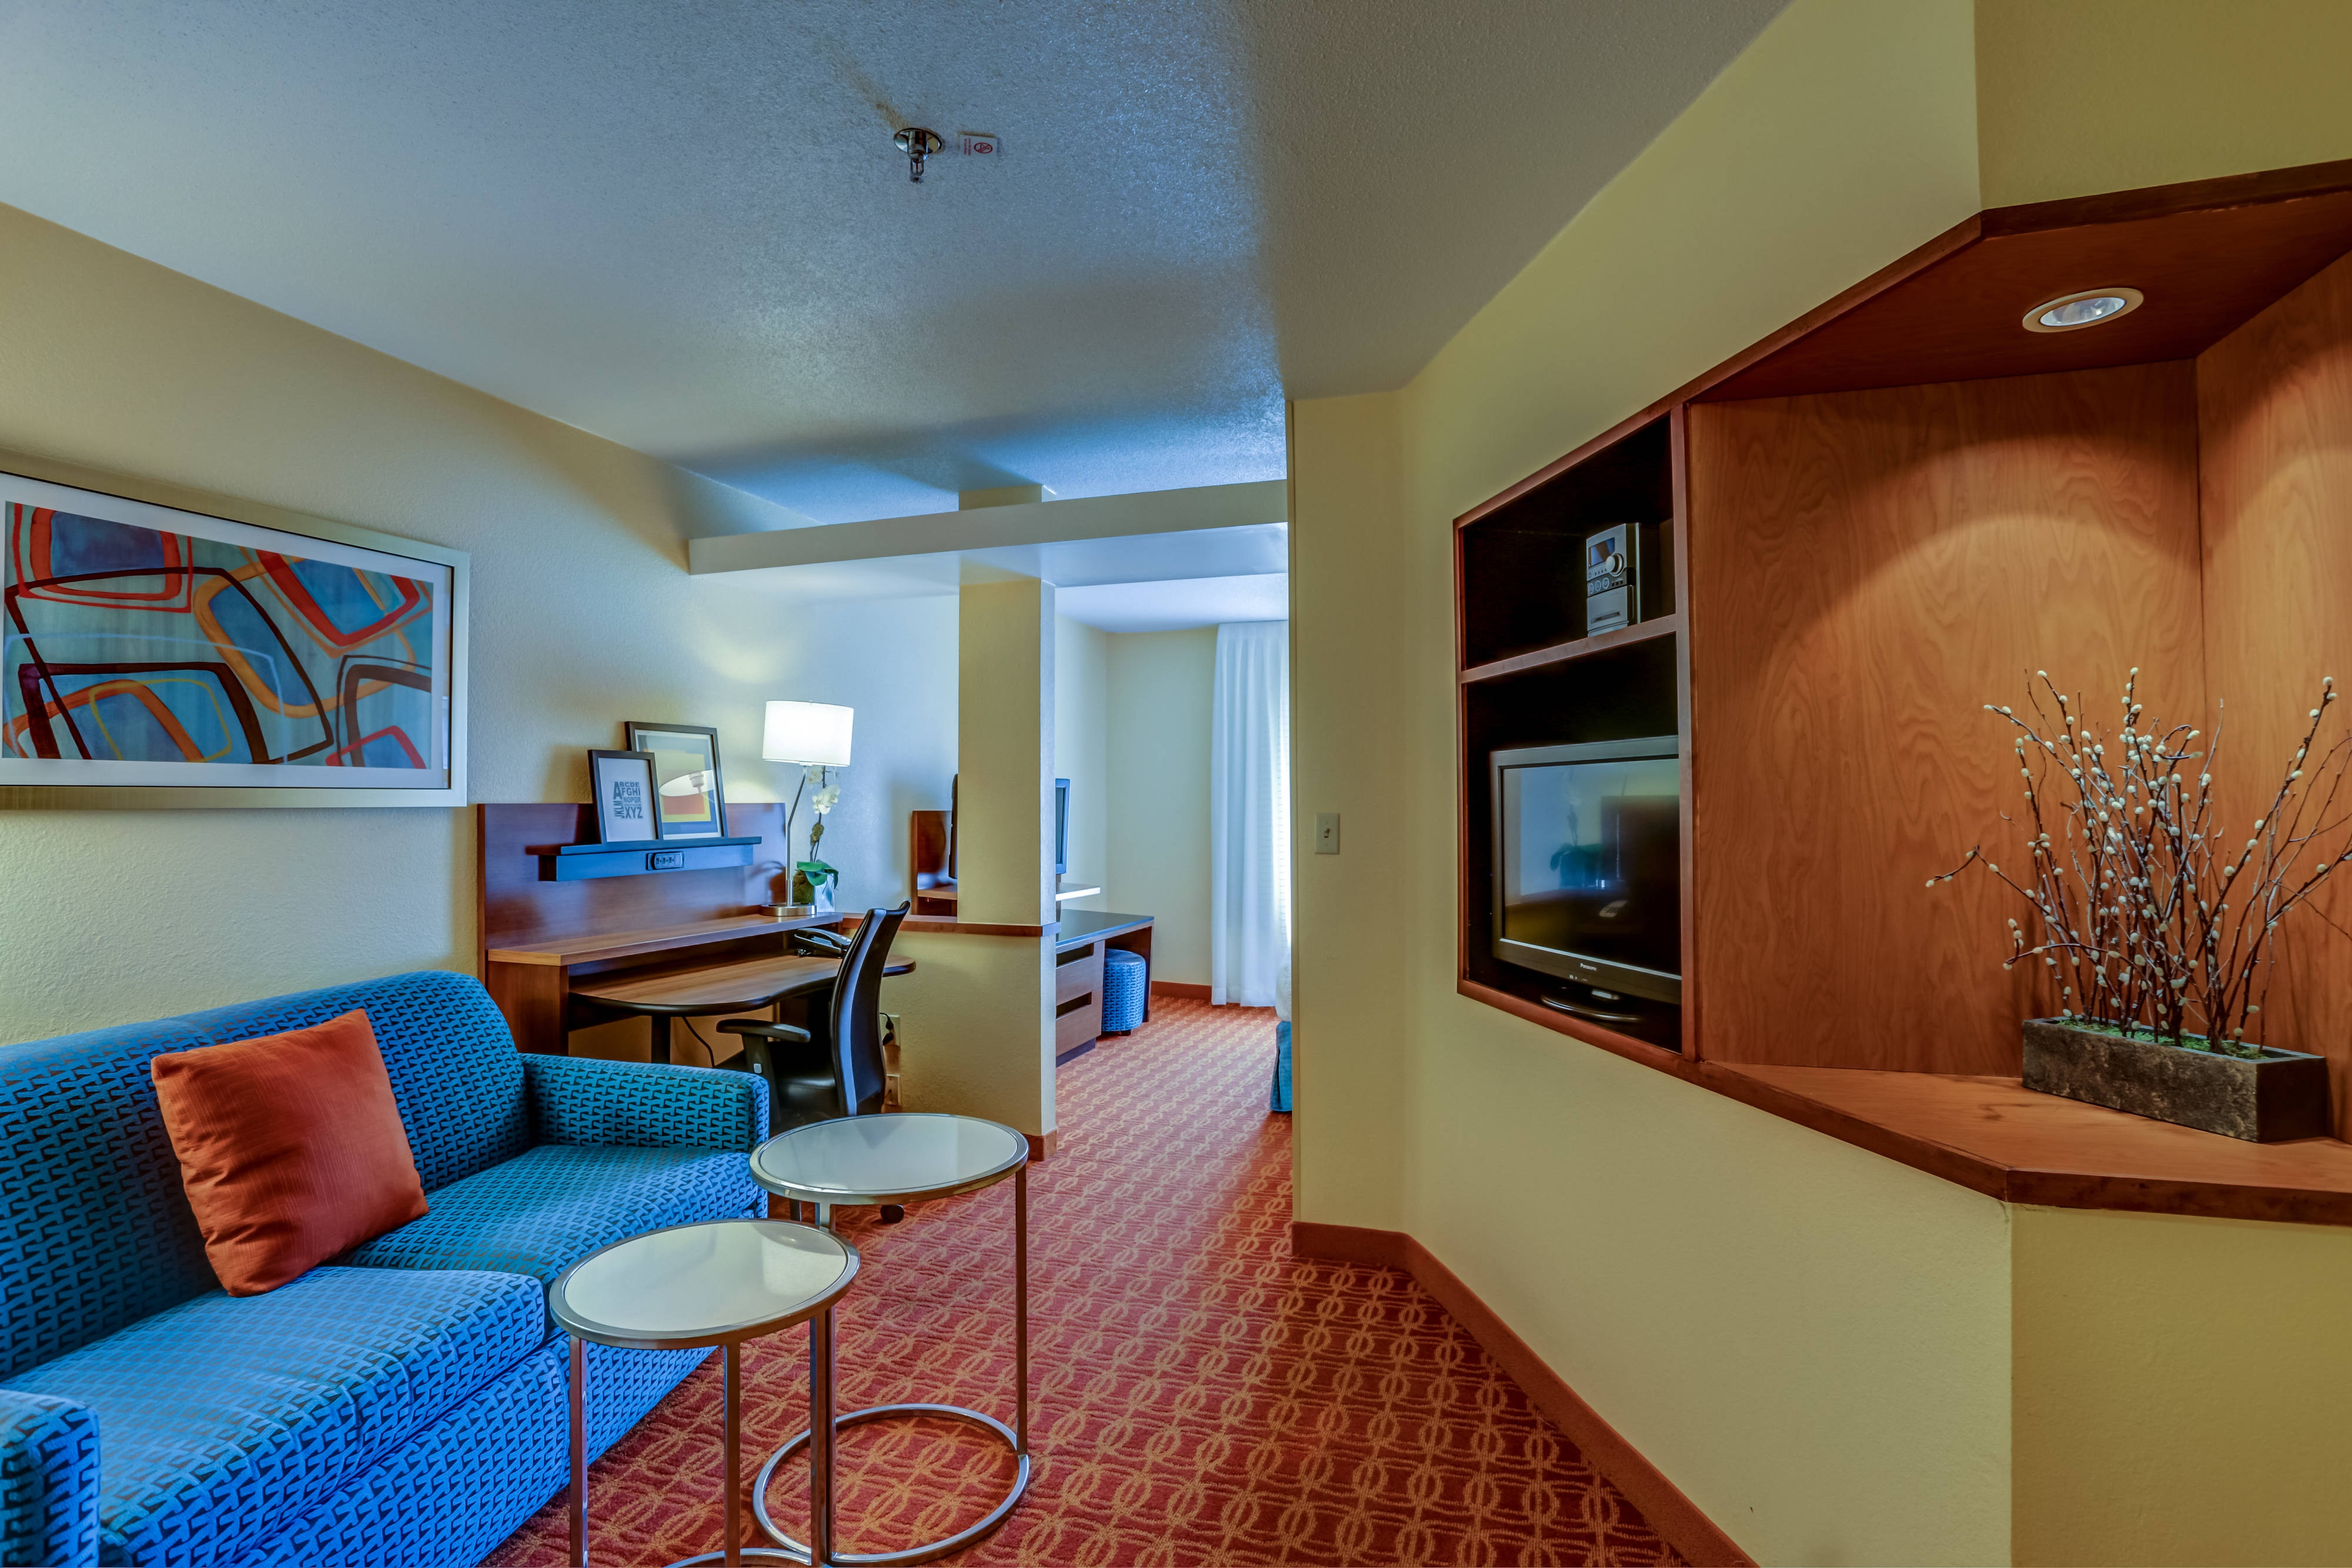 Fairfield Inn & Suites hotel room, Memphis hotel room